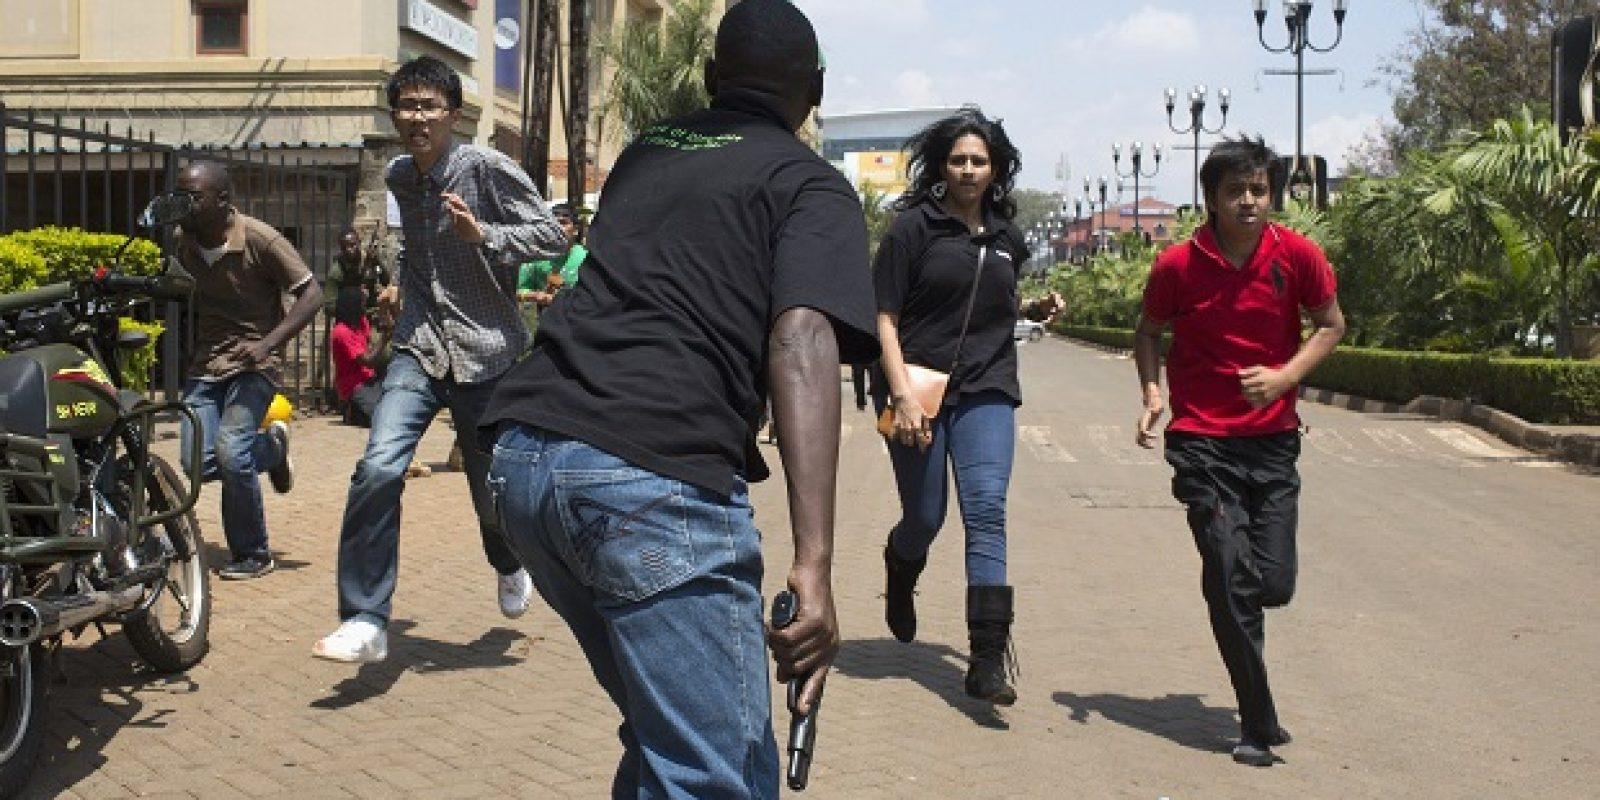 An armed security officer assists civilians escaping from the Westgate Shopping Centre where gunmen went on a shooting spree, in Nairobi. Imagen Por: An armed security officer (C) assists civilians escaping from the Westgate Shopping Centre where gunmen went on a shooting spree, in Nairobi September 21, 2013. The gunmen stormed the shopping mall in Nairobi on Saturday killing at least 20 people in what Kenya